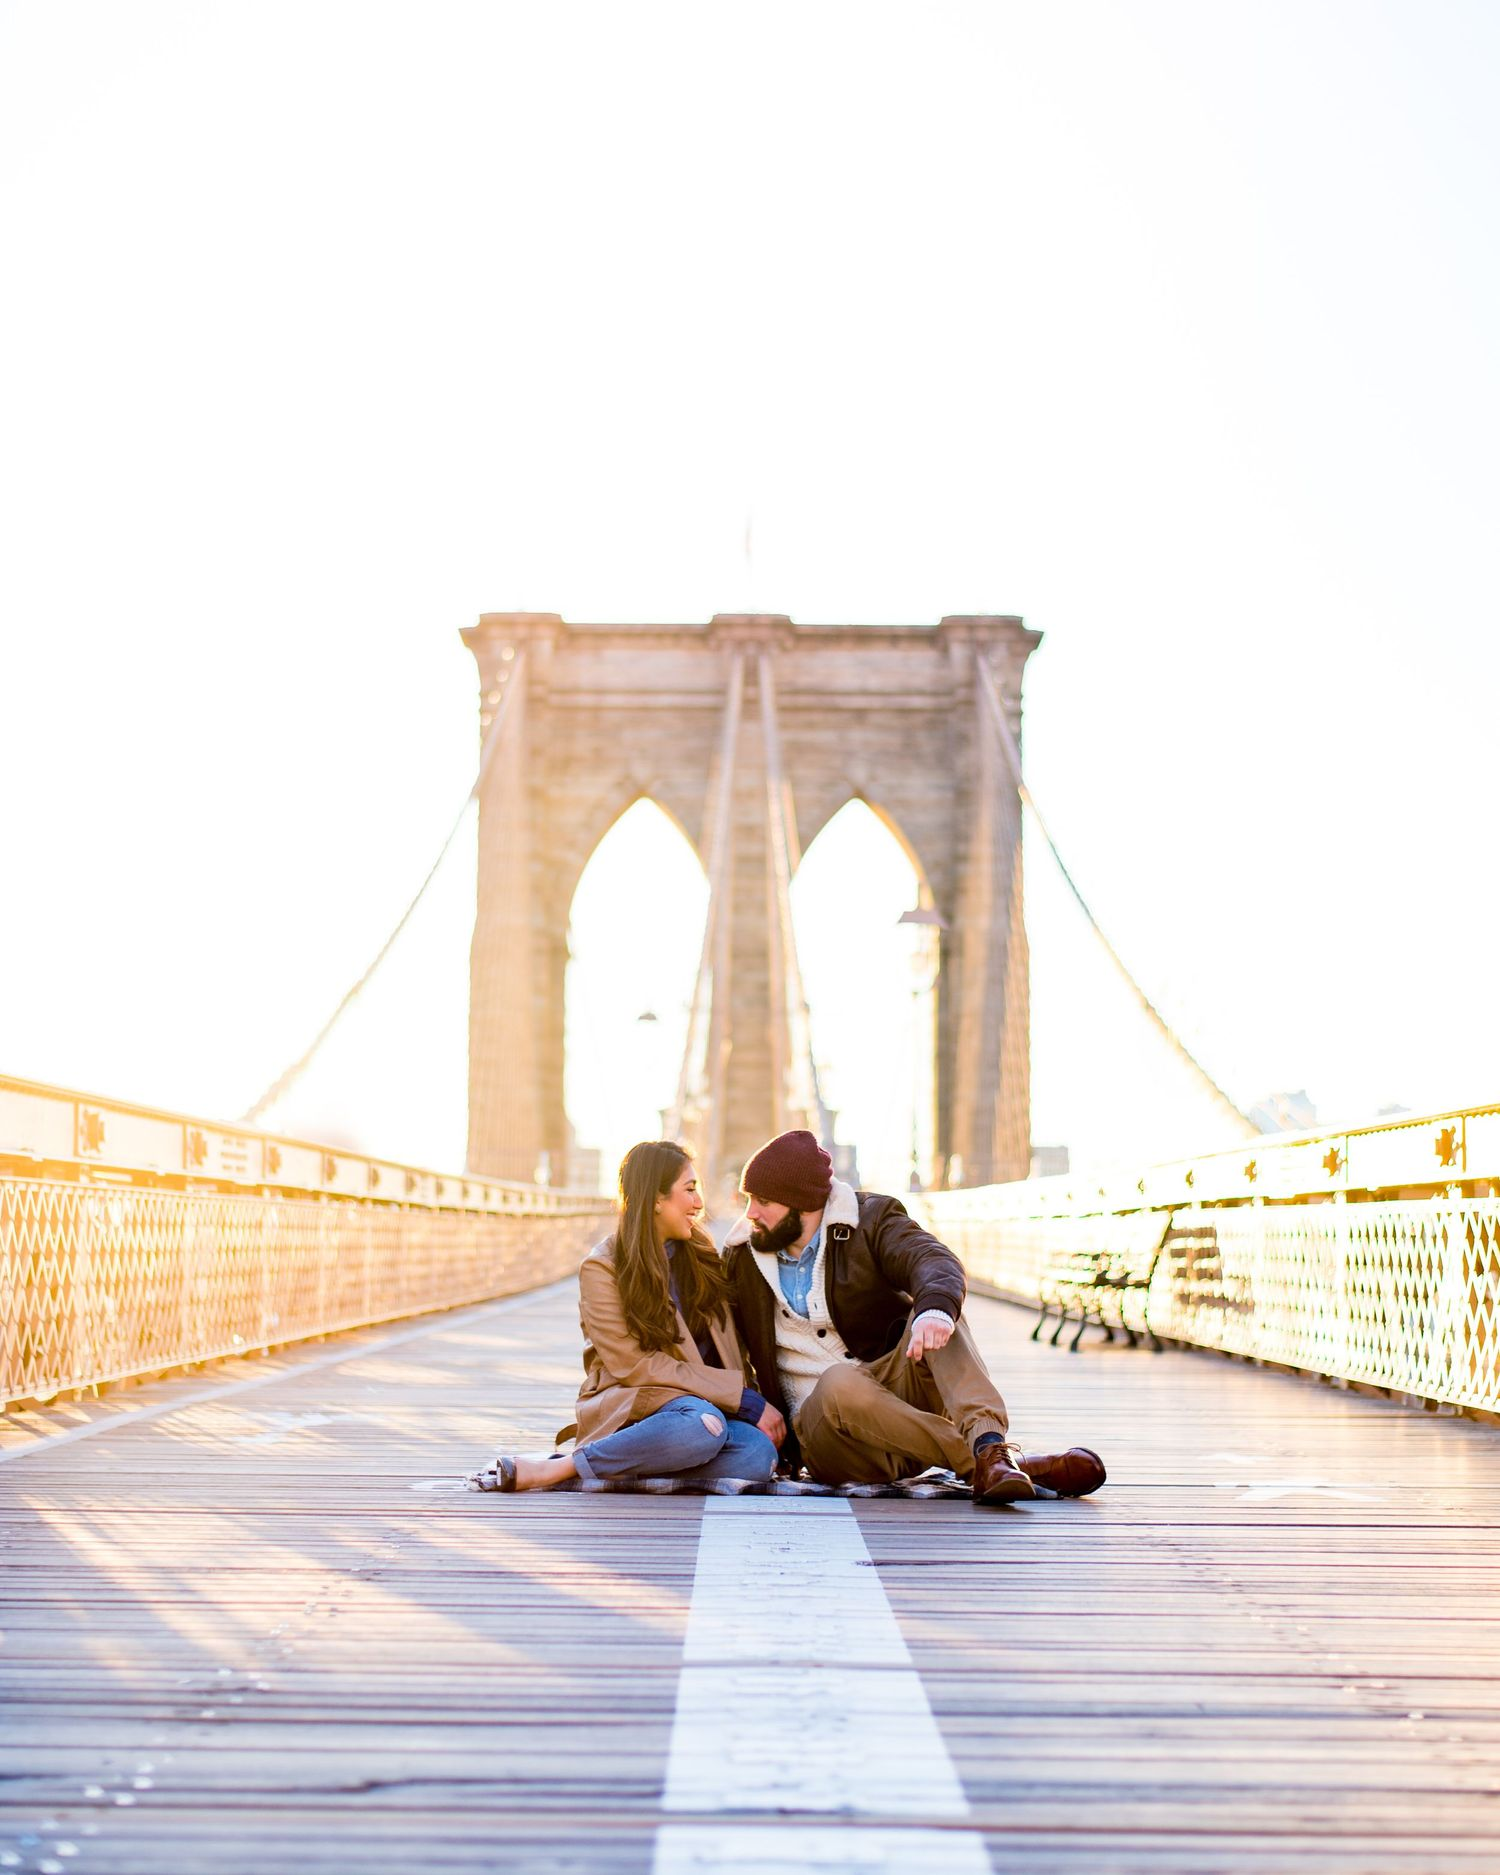 engaged couple sitting in the middle of an empty Brooklyn Bridge at sunrise in NYC while laughing and cuddling